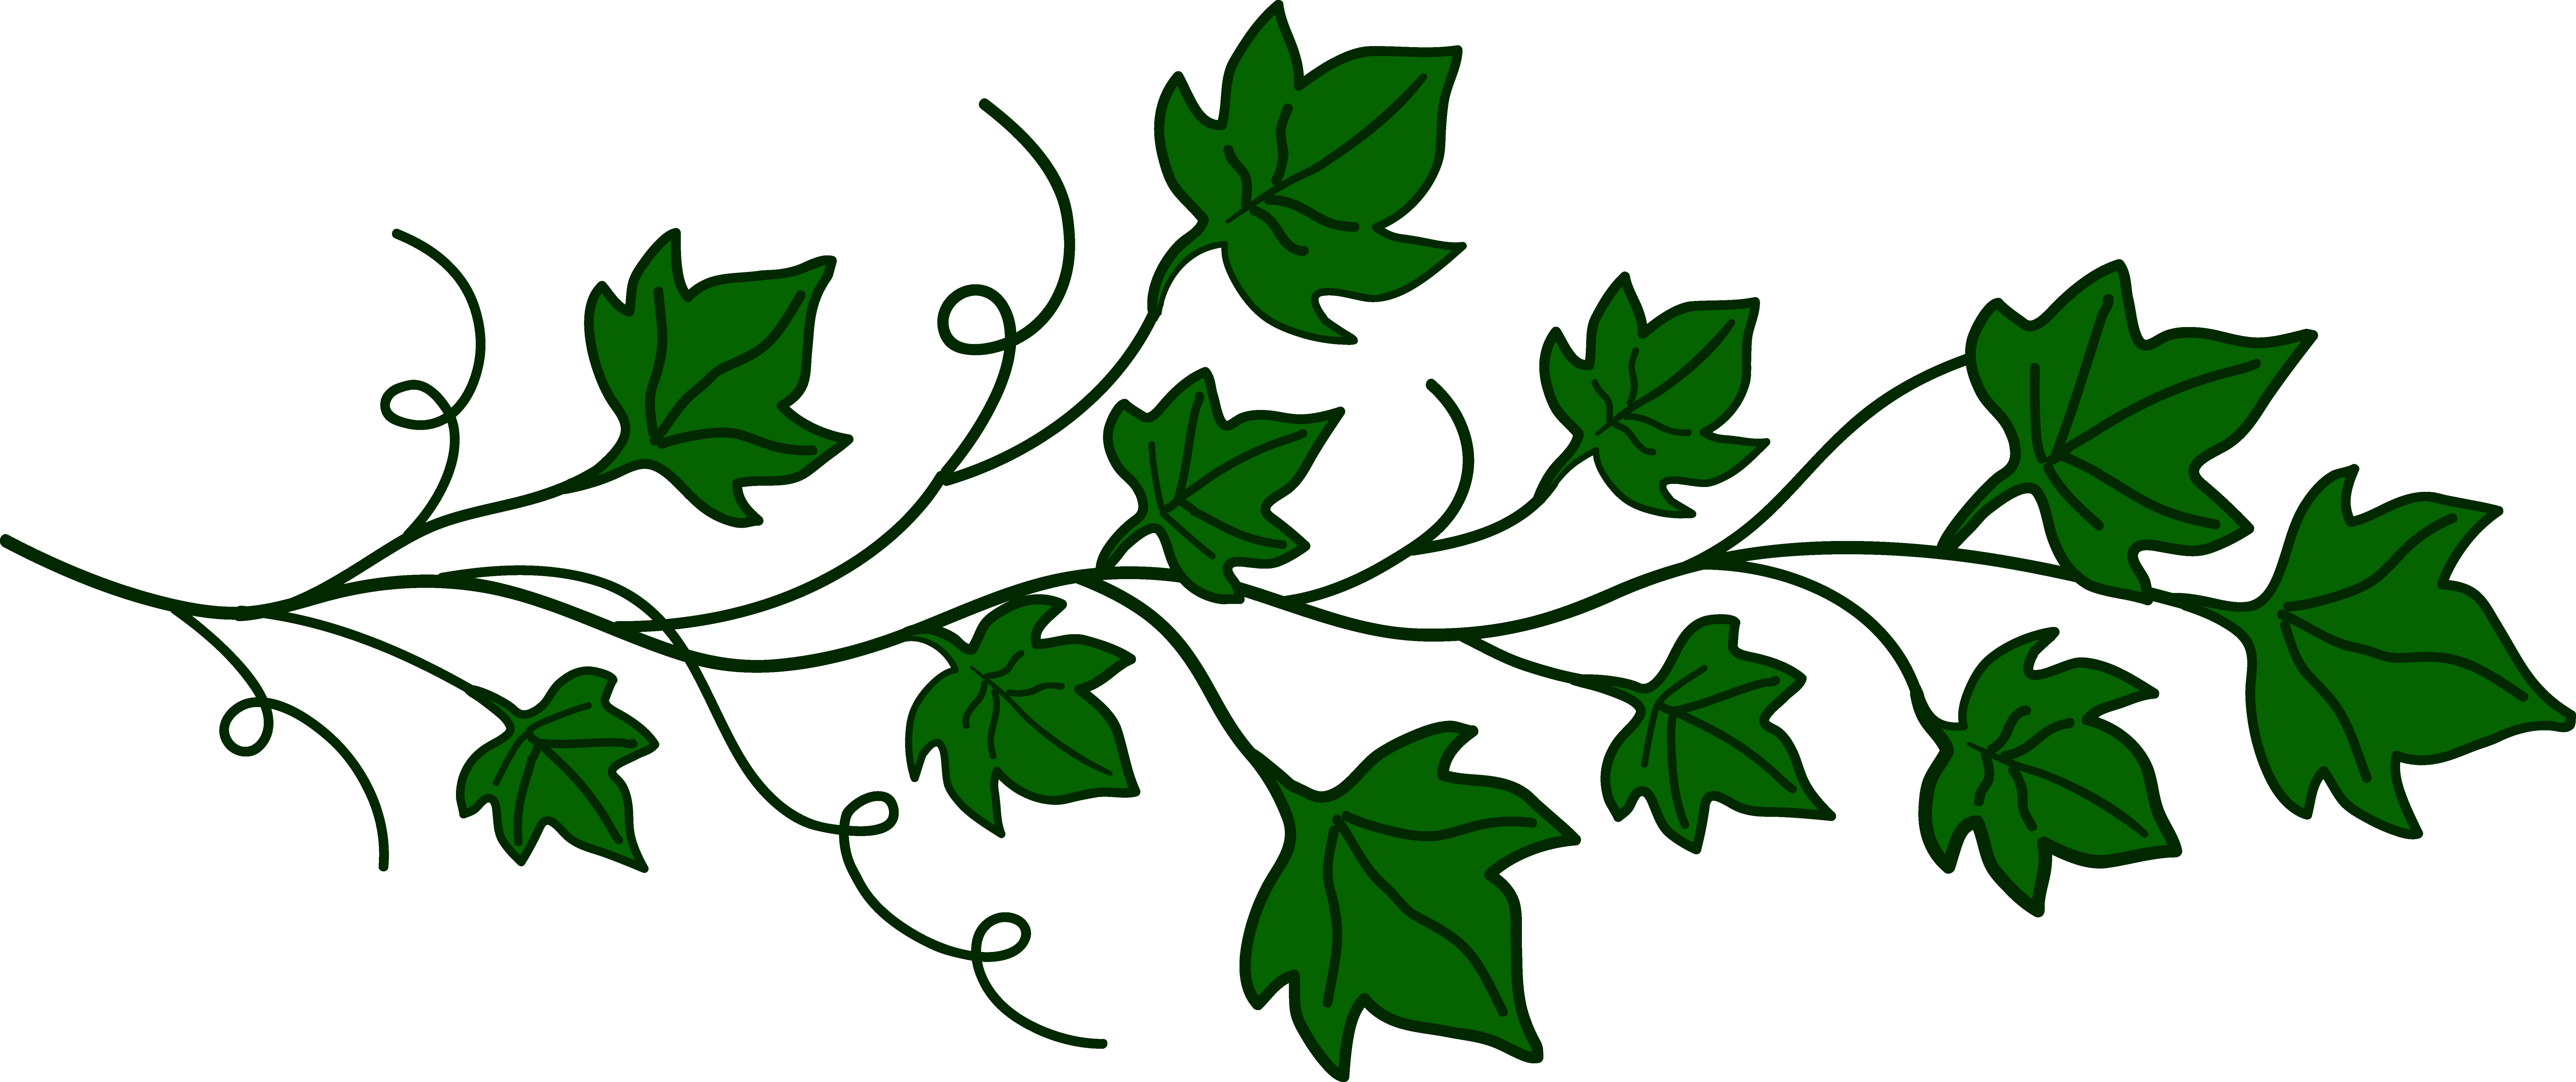 Ivy clipart #4, Download drawings